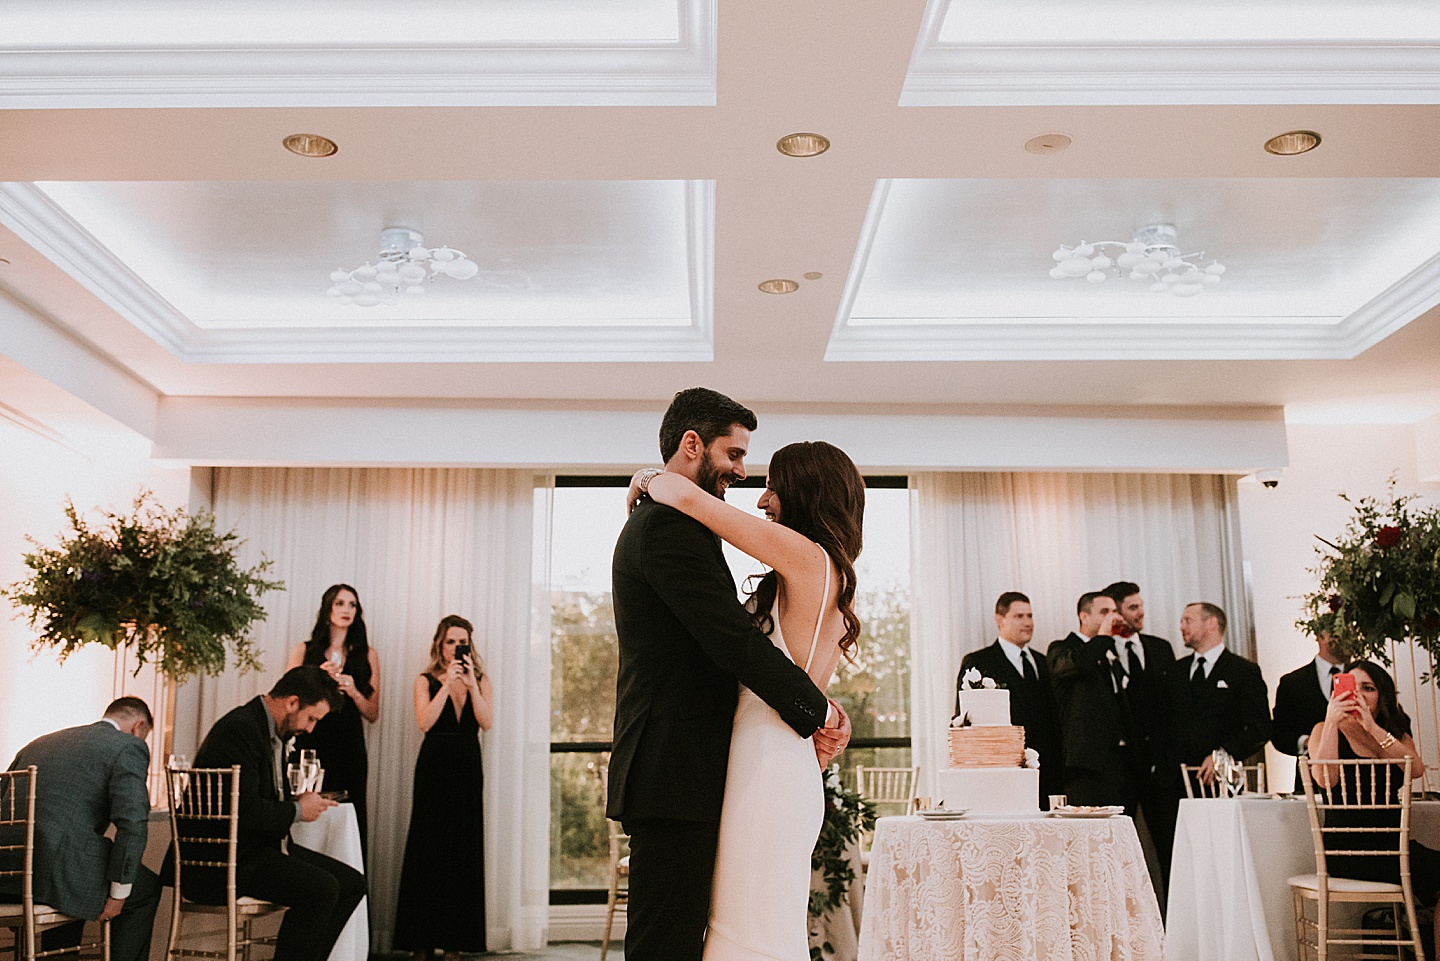 Couple first dance at wedding